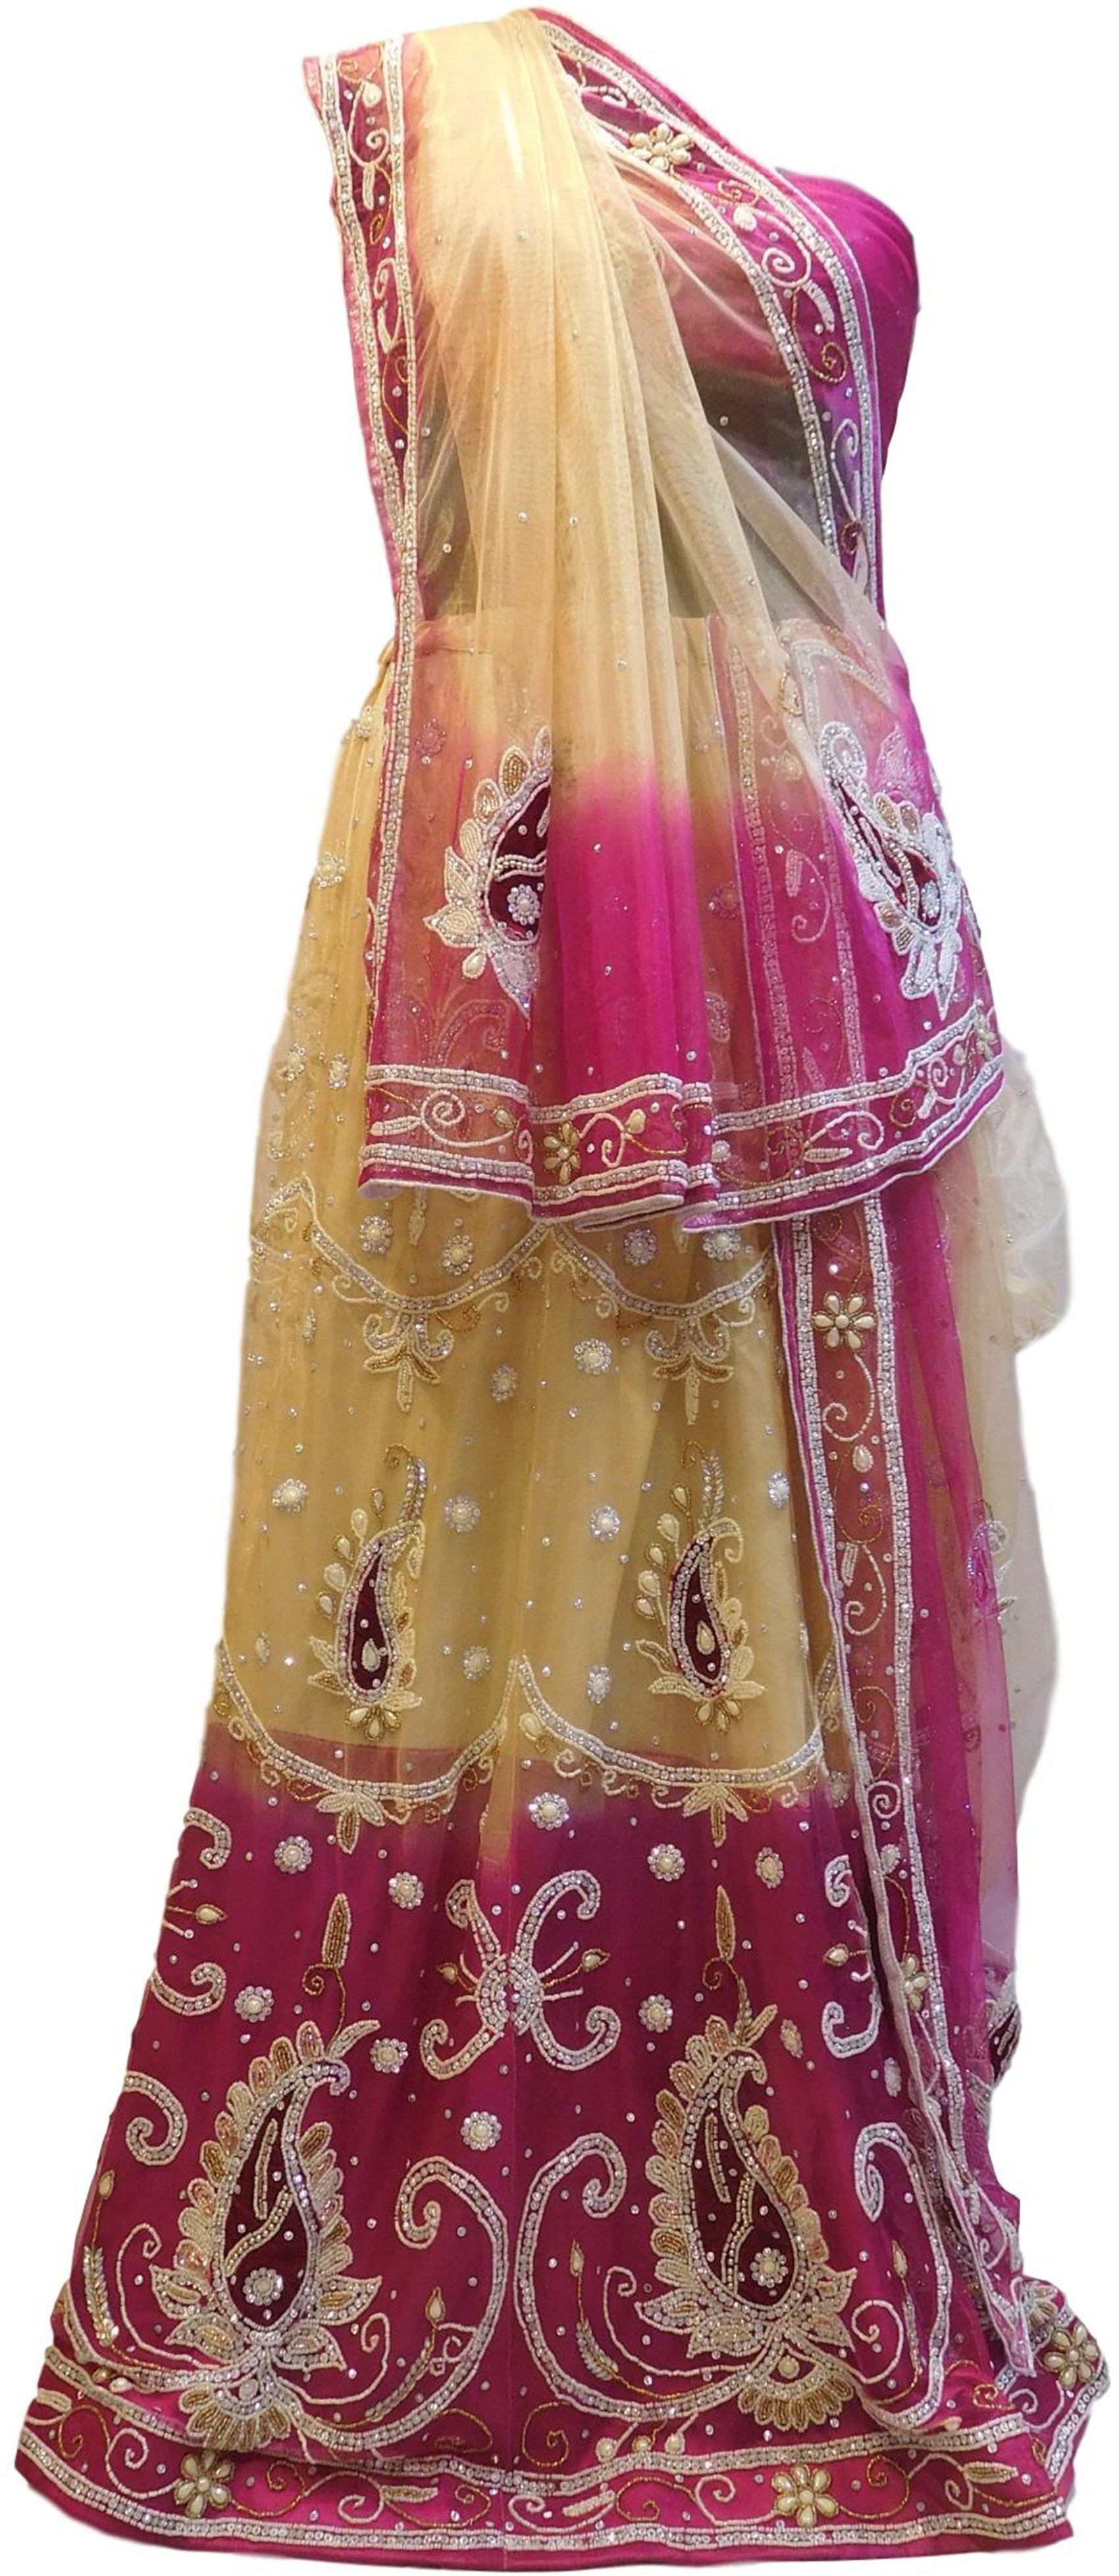 Cream & Pink Designer Wedding Partywear Net Bullion Beads Stone Pearl Hand Embroidery Work Bridal Lahenga Choli Dupatta Semistitched LAE119